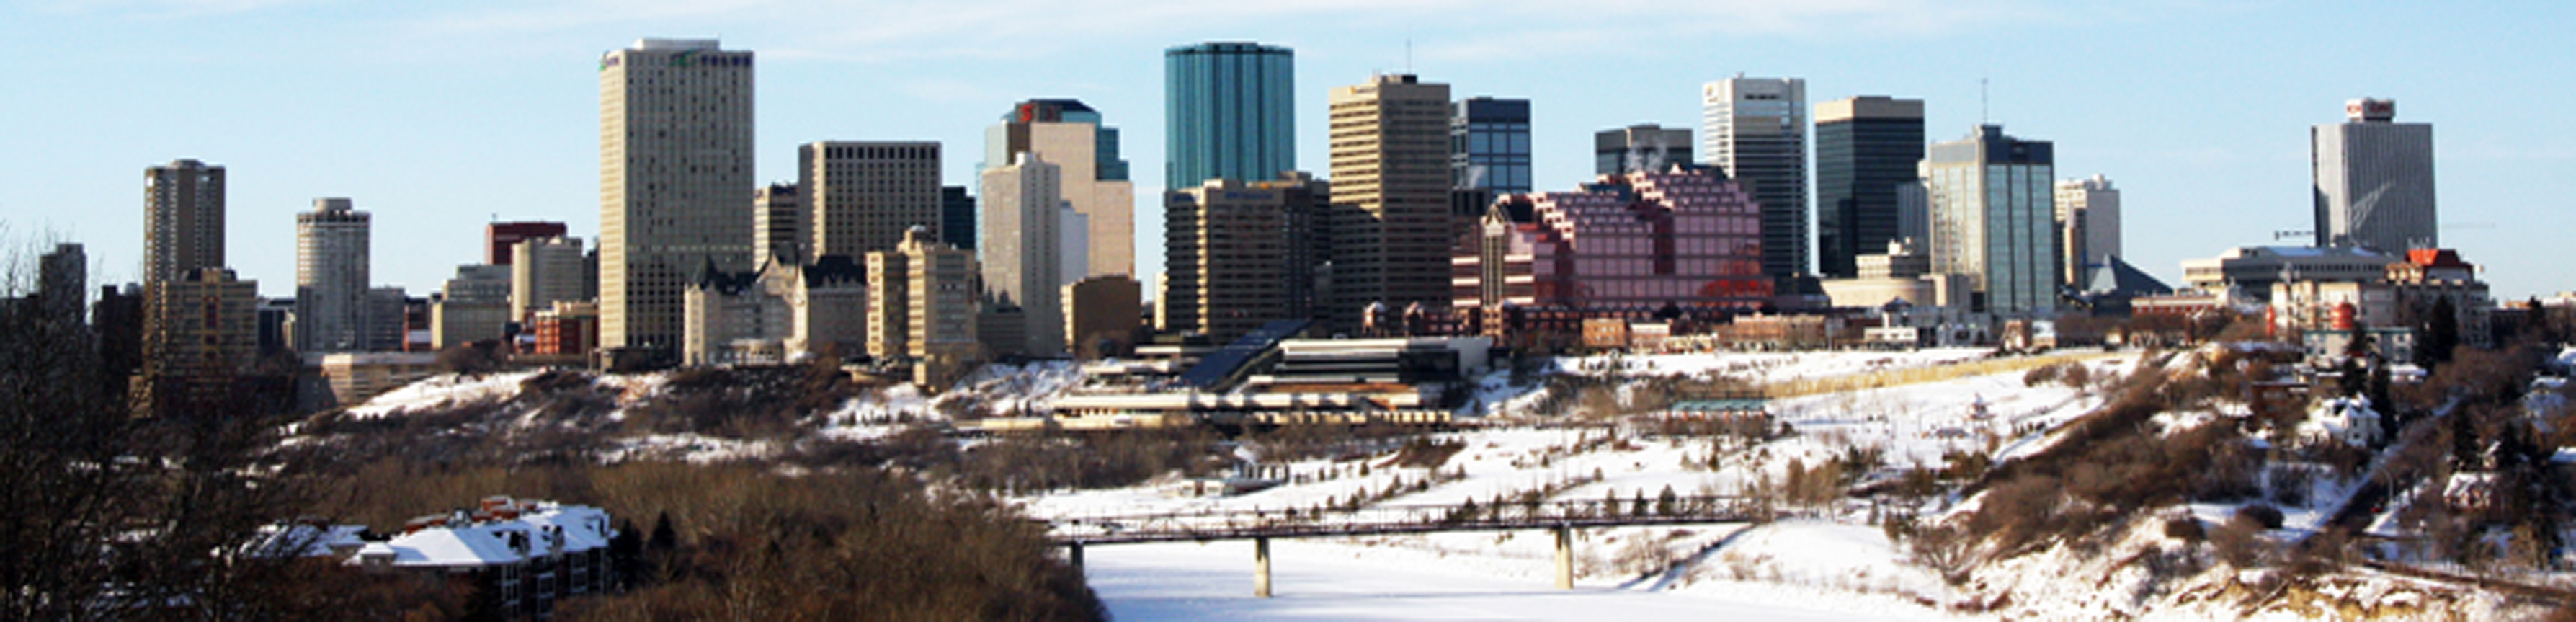 Edmonton Alberta Winter Skyline Photo